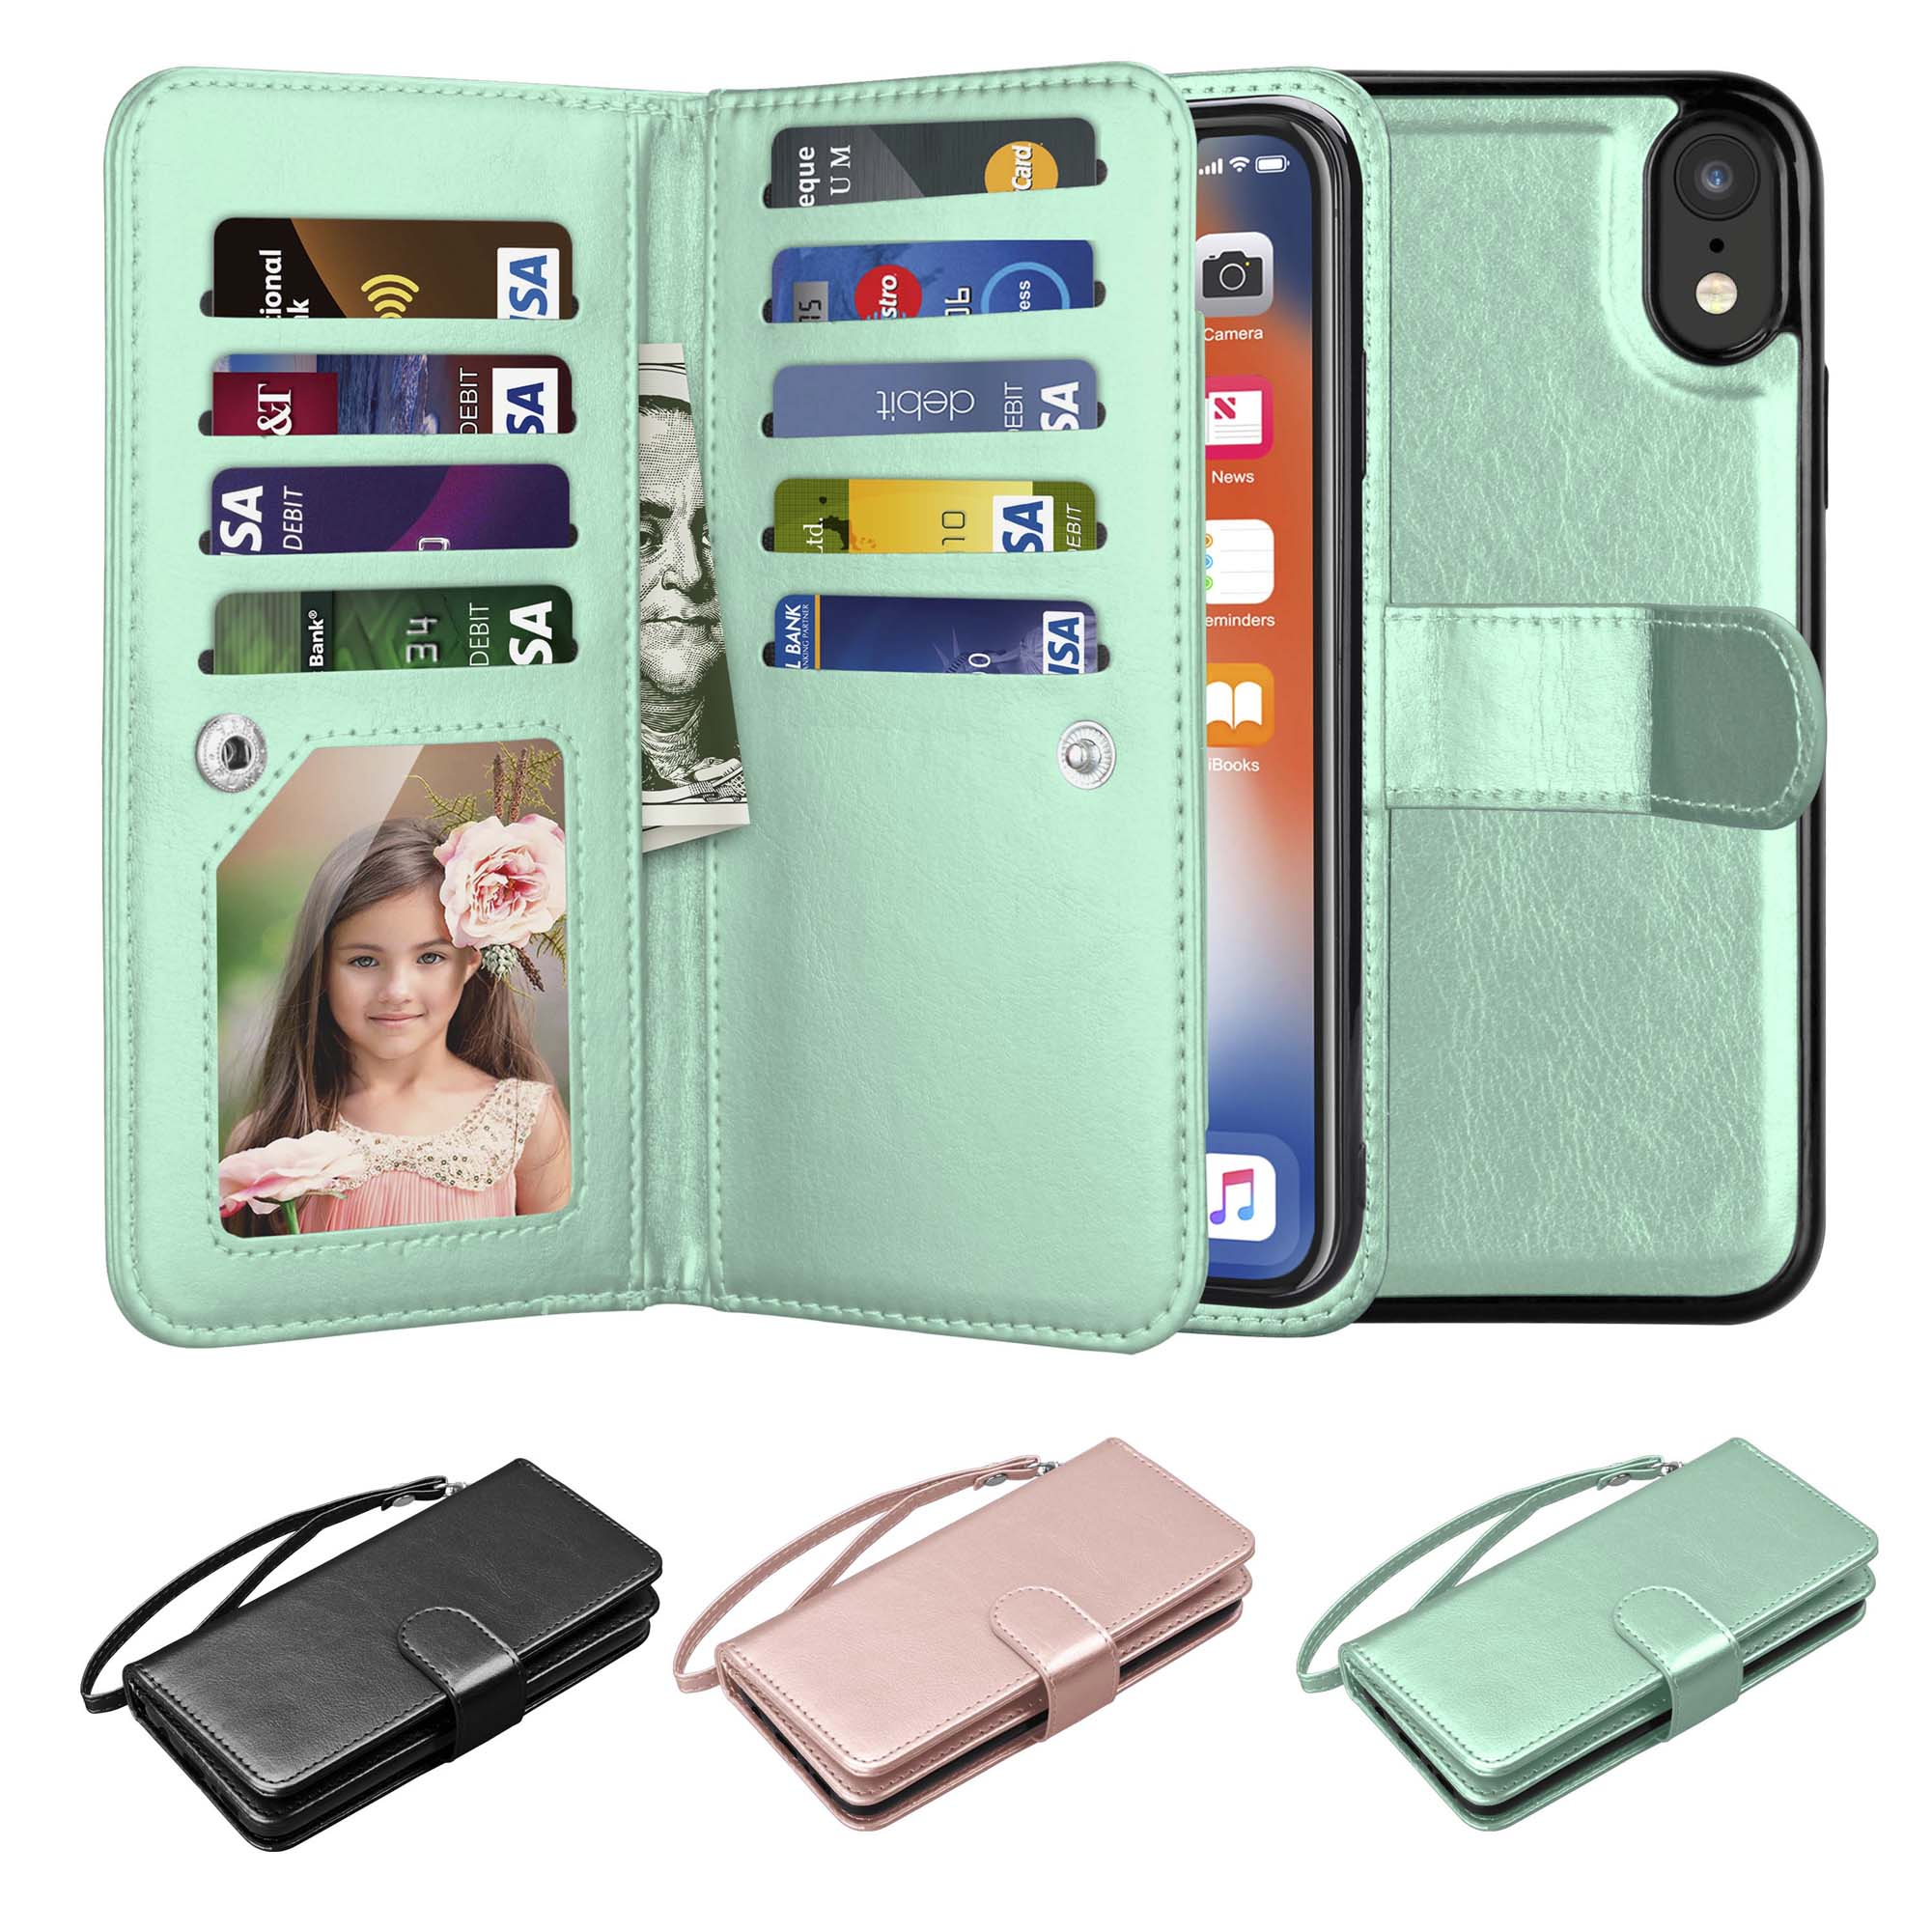 "iPhone XR Case, Wallet Case iPhone XR, iPhone XR Pu Leather Case, Njjex Pu Leather Magnet Stand Wallet Credit Card Holder Flip Case 9 Card Slots Case For Apple iPhone XR 6.1"" 2018 -Mint"